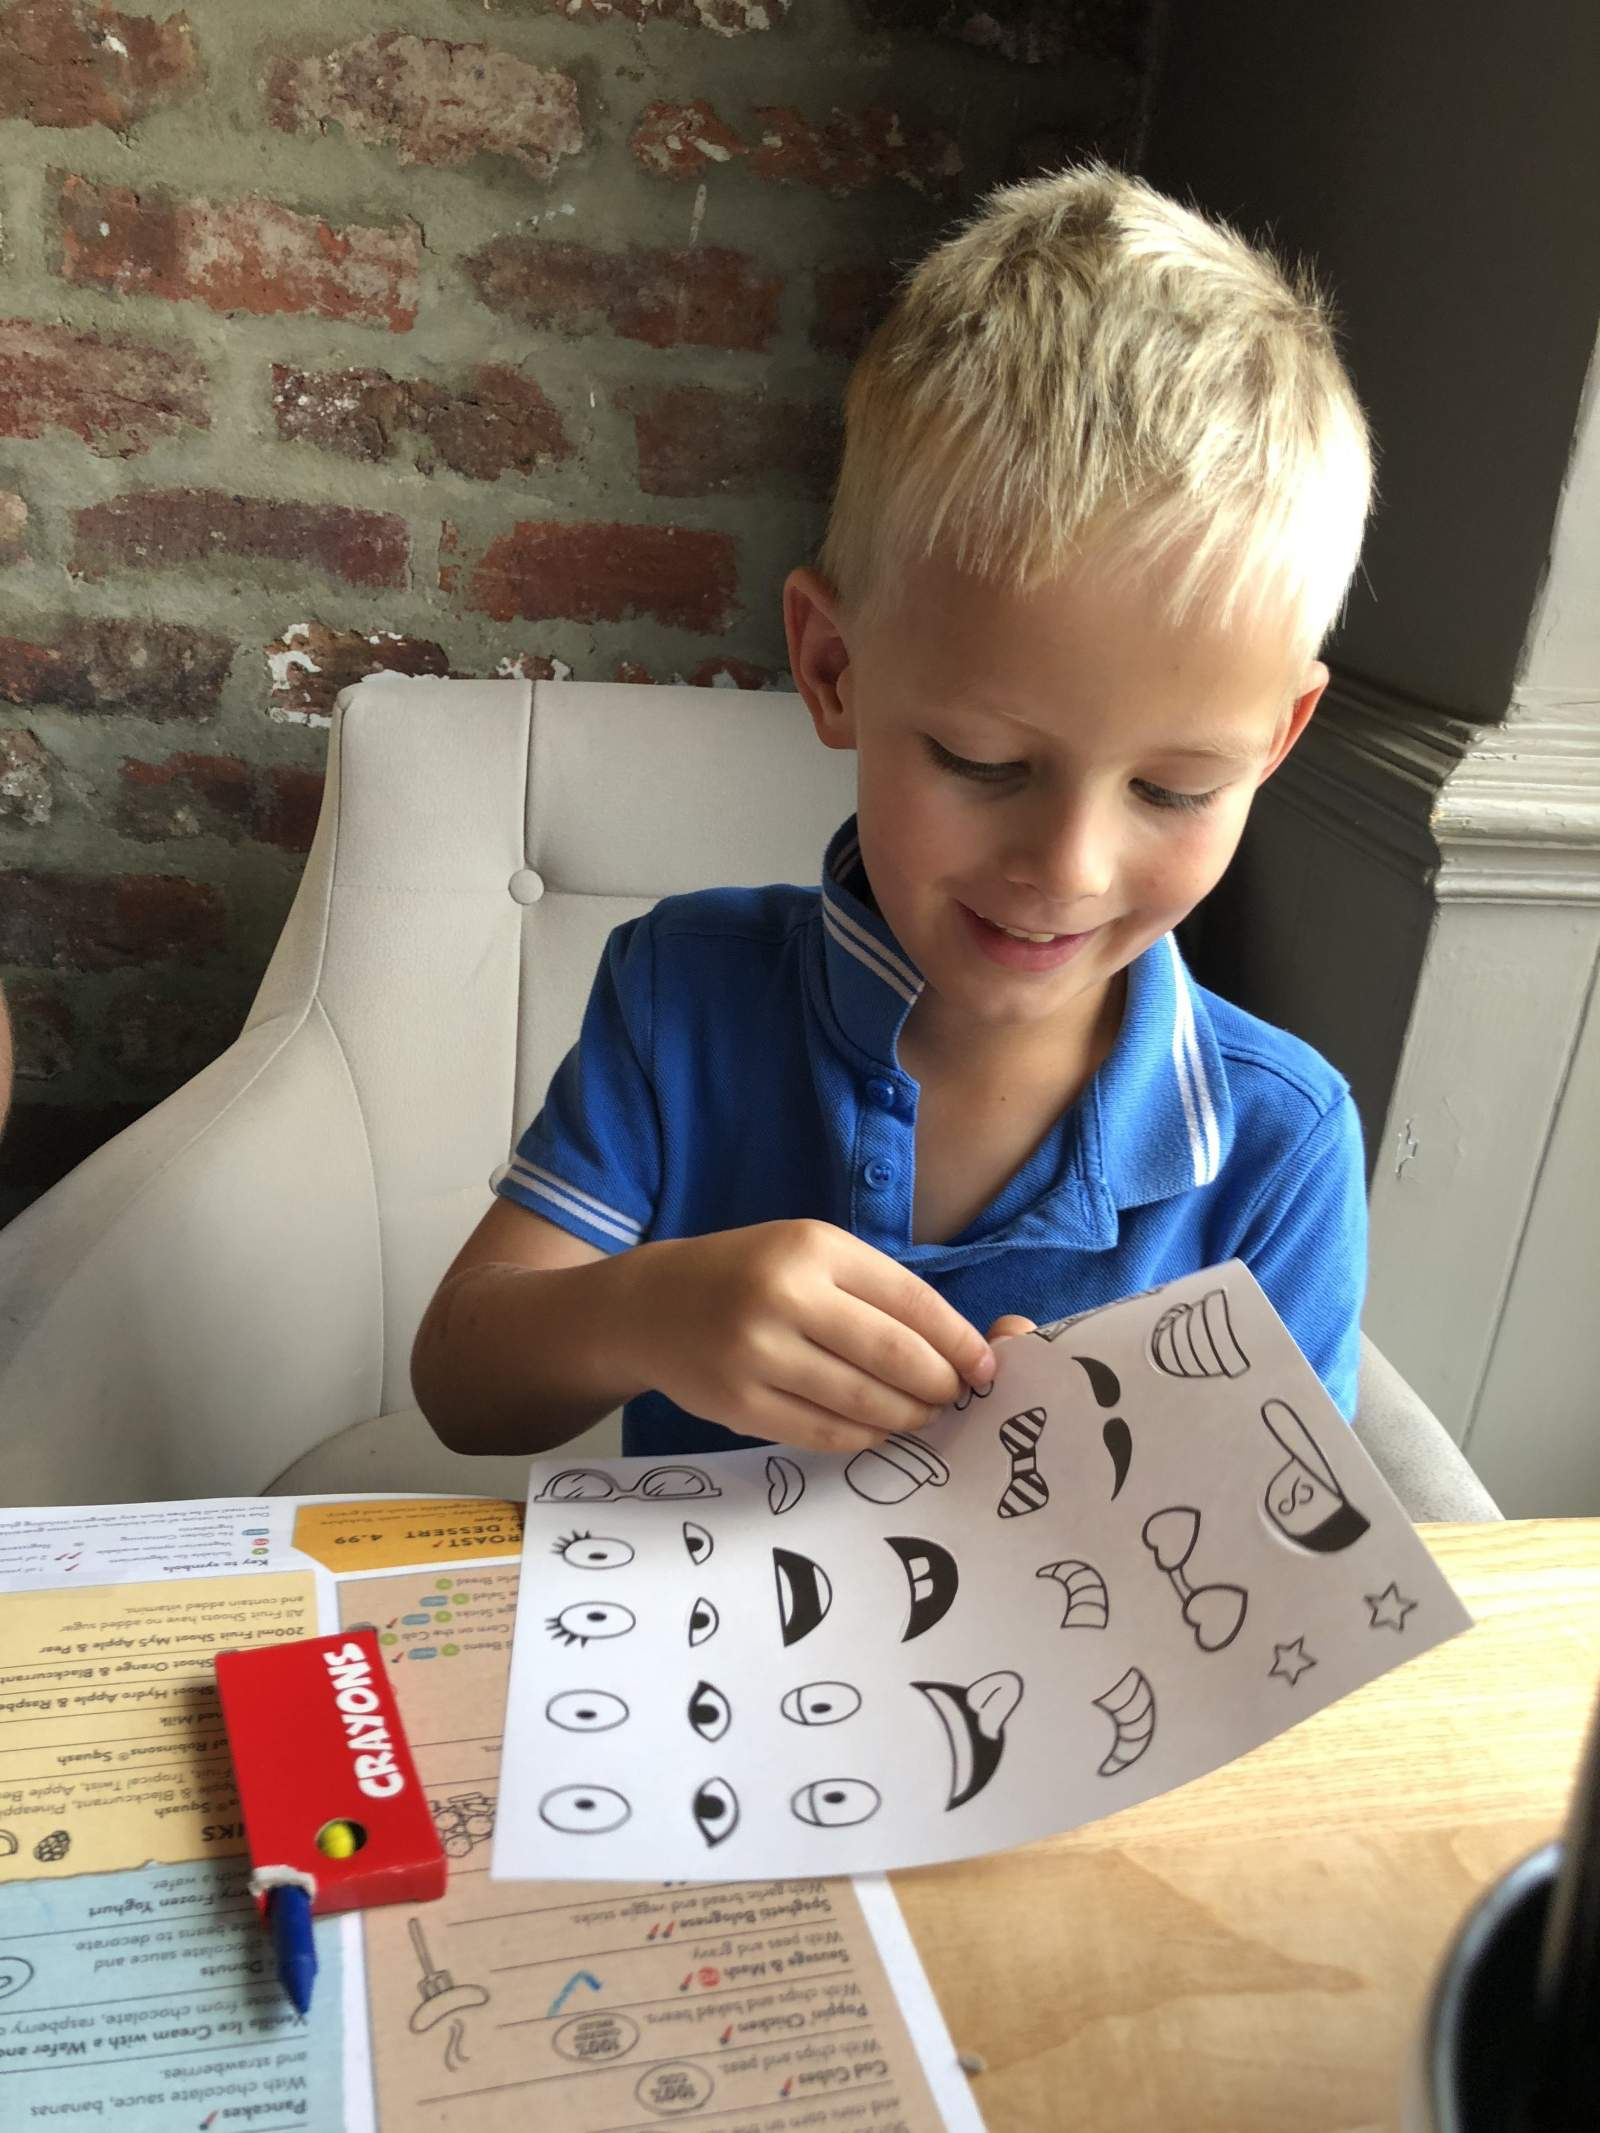 Kids Menu activities stickers cookhouse and pub holystone